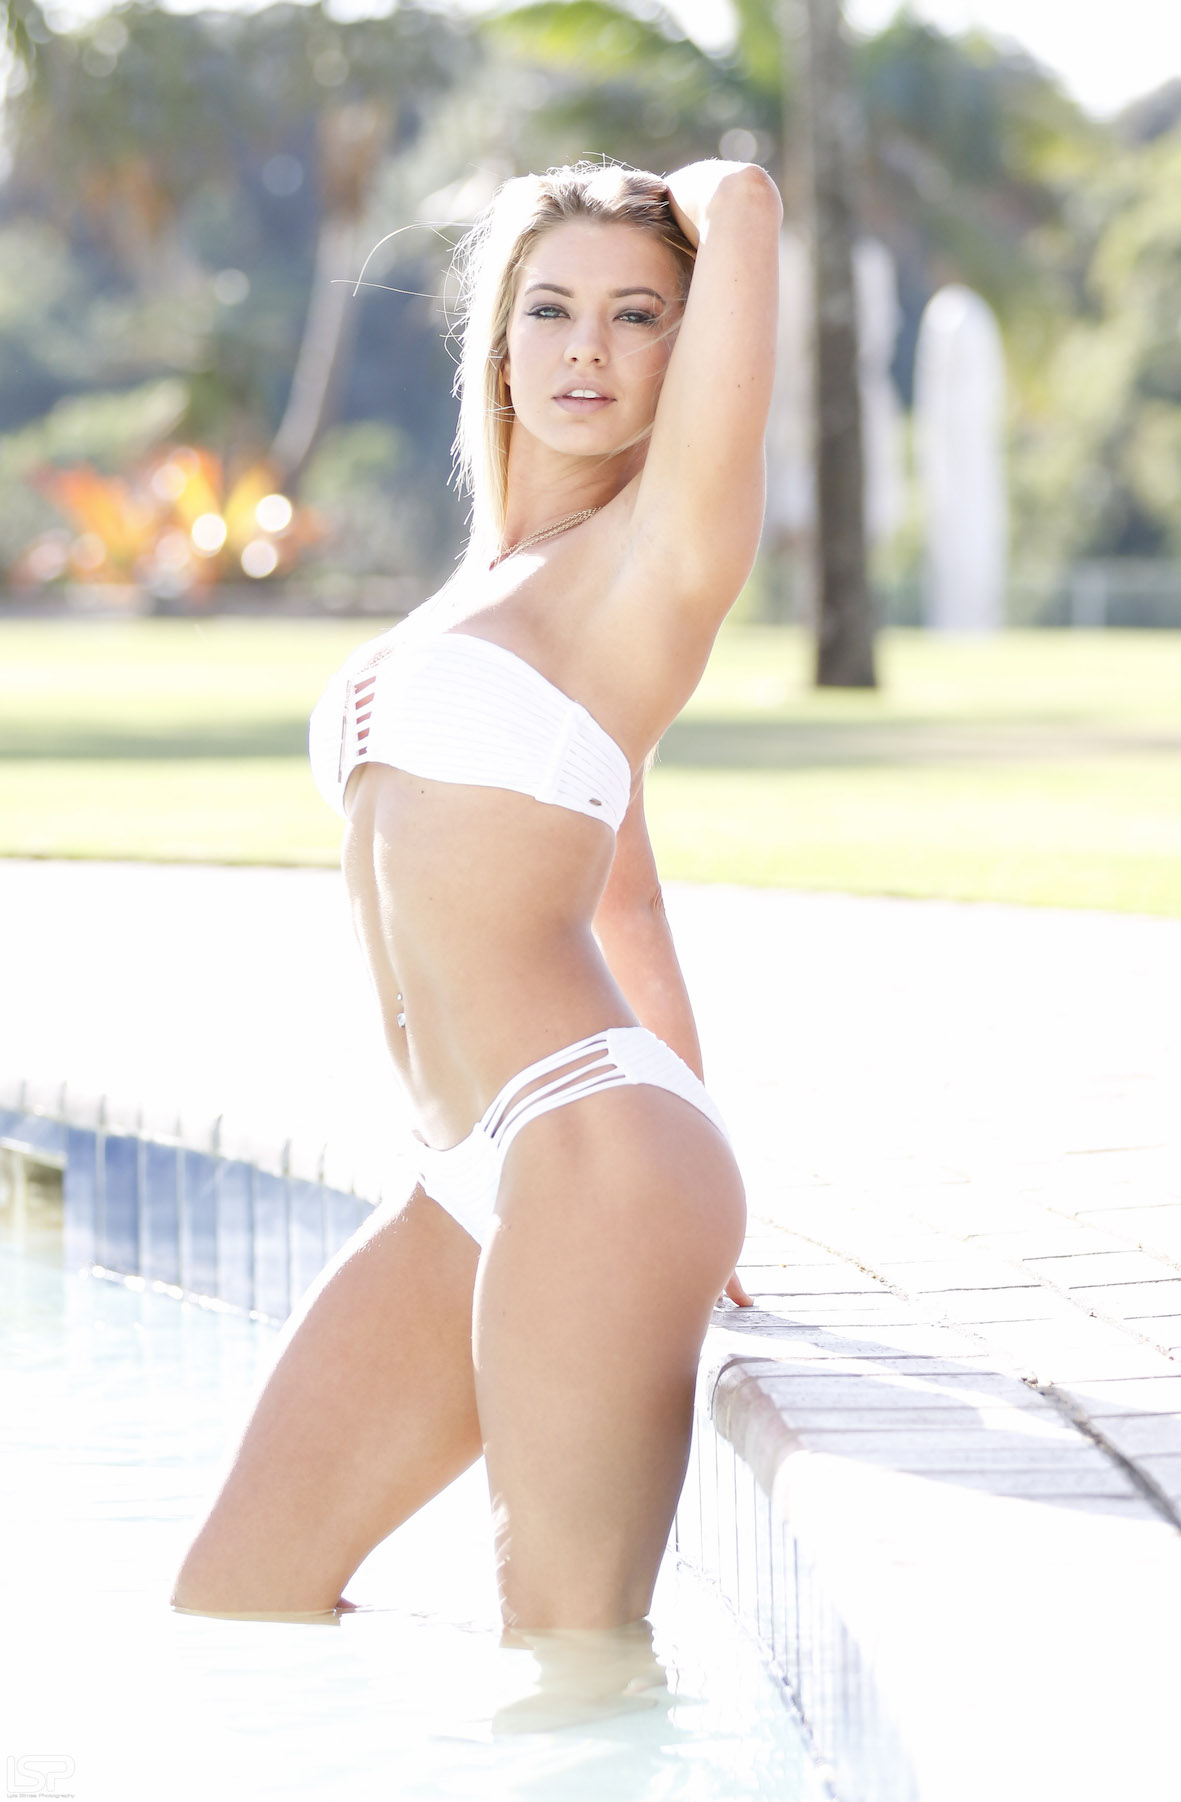 Our SA Babes feature with Lindie Oosthuizen